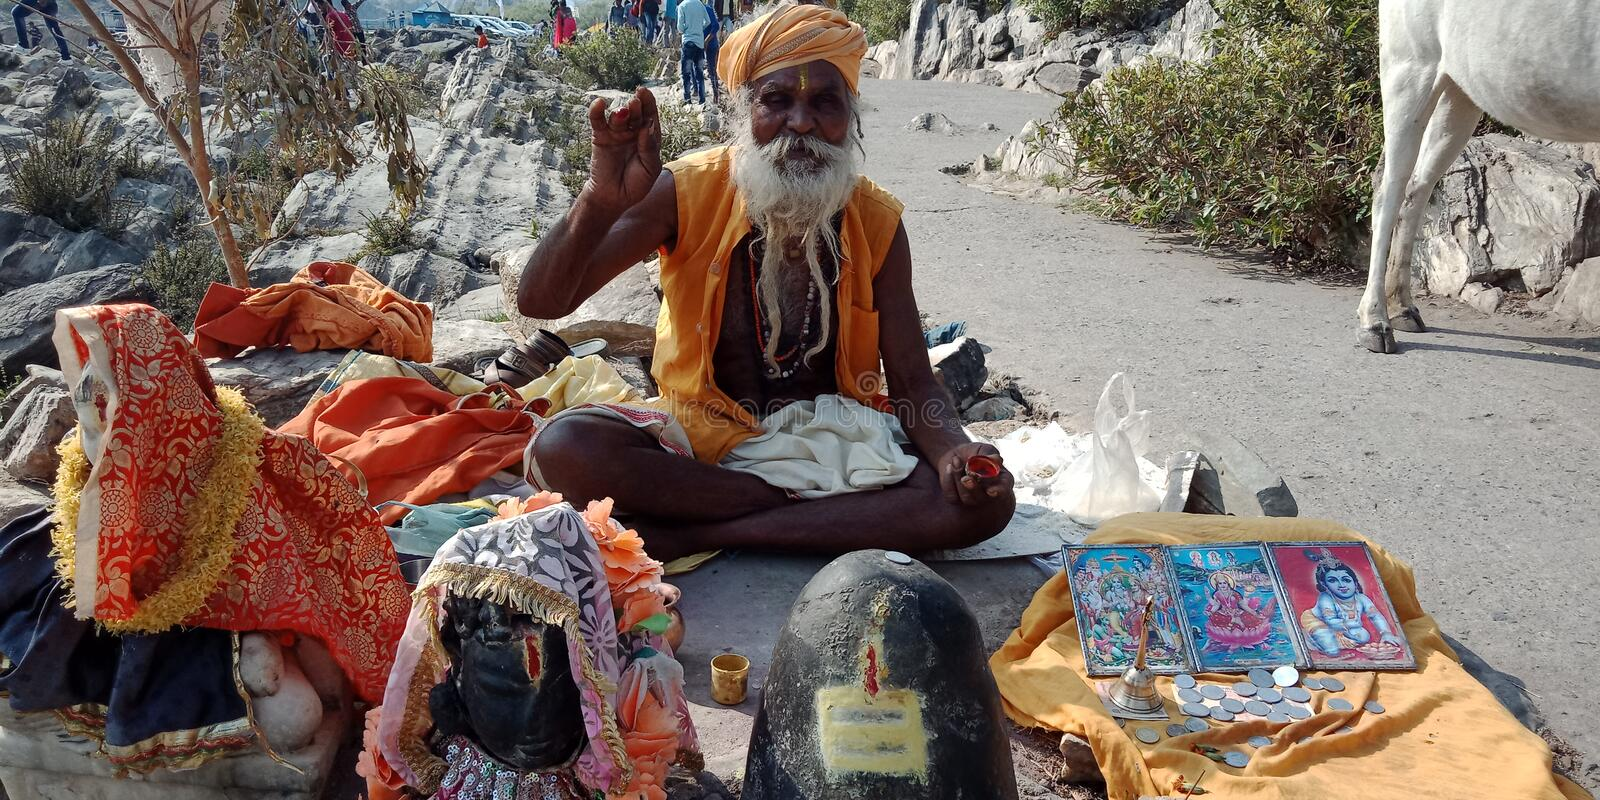 Old man with lord shivalinga on street in india. Street port-rate,old man with lord shivalinga on street, use for backgrounds, paintings, book covers for history royalty free stock image